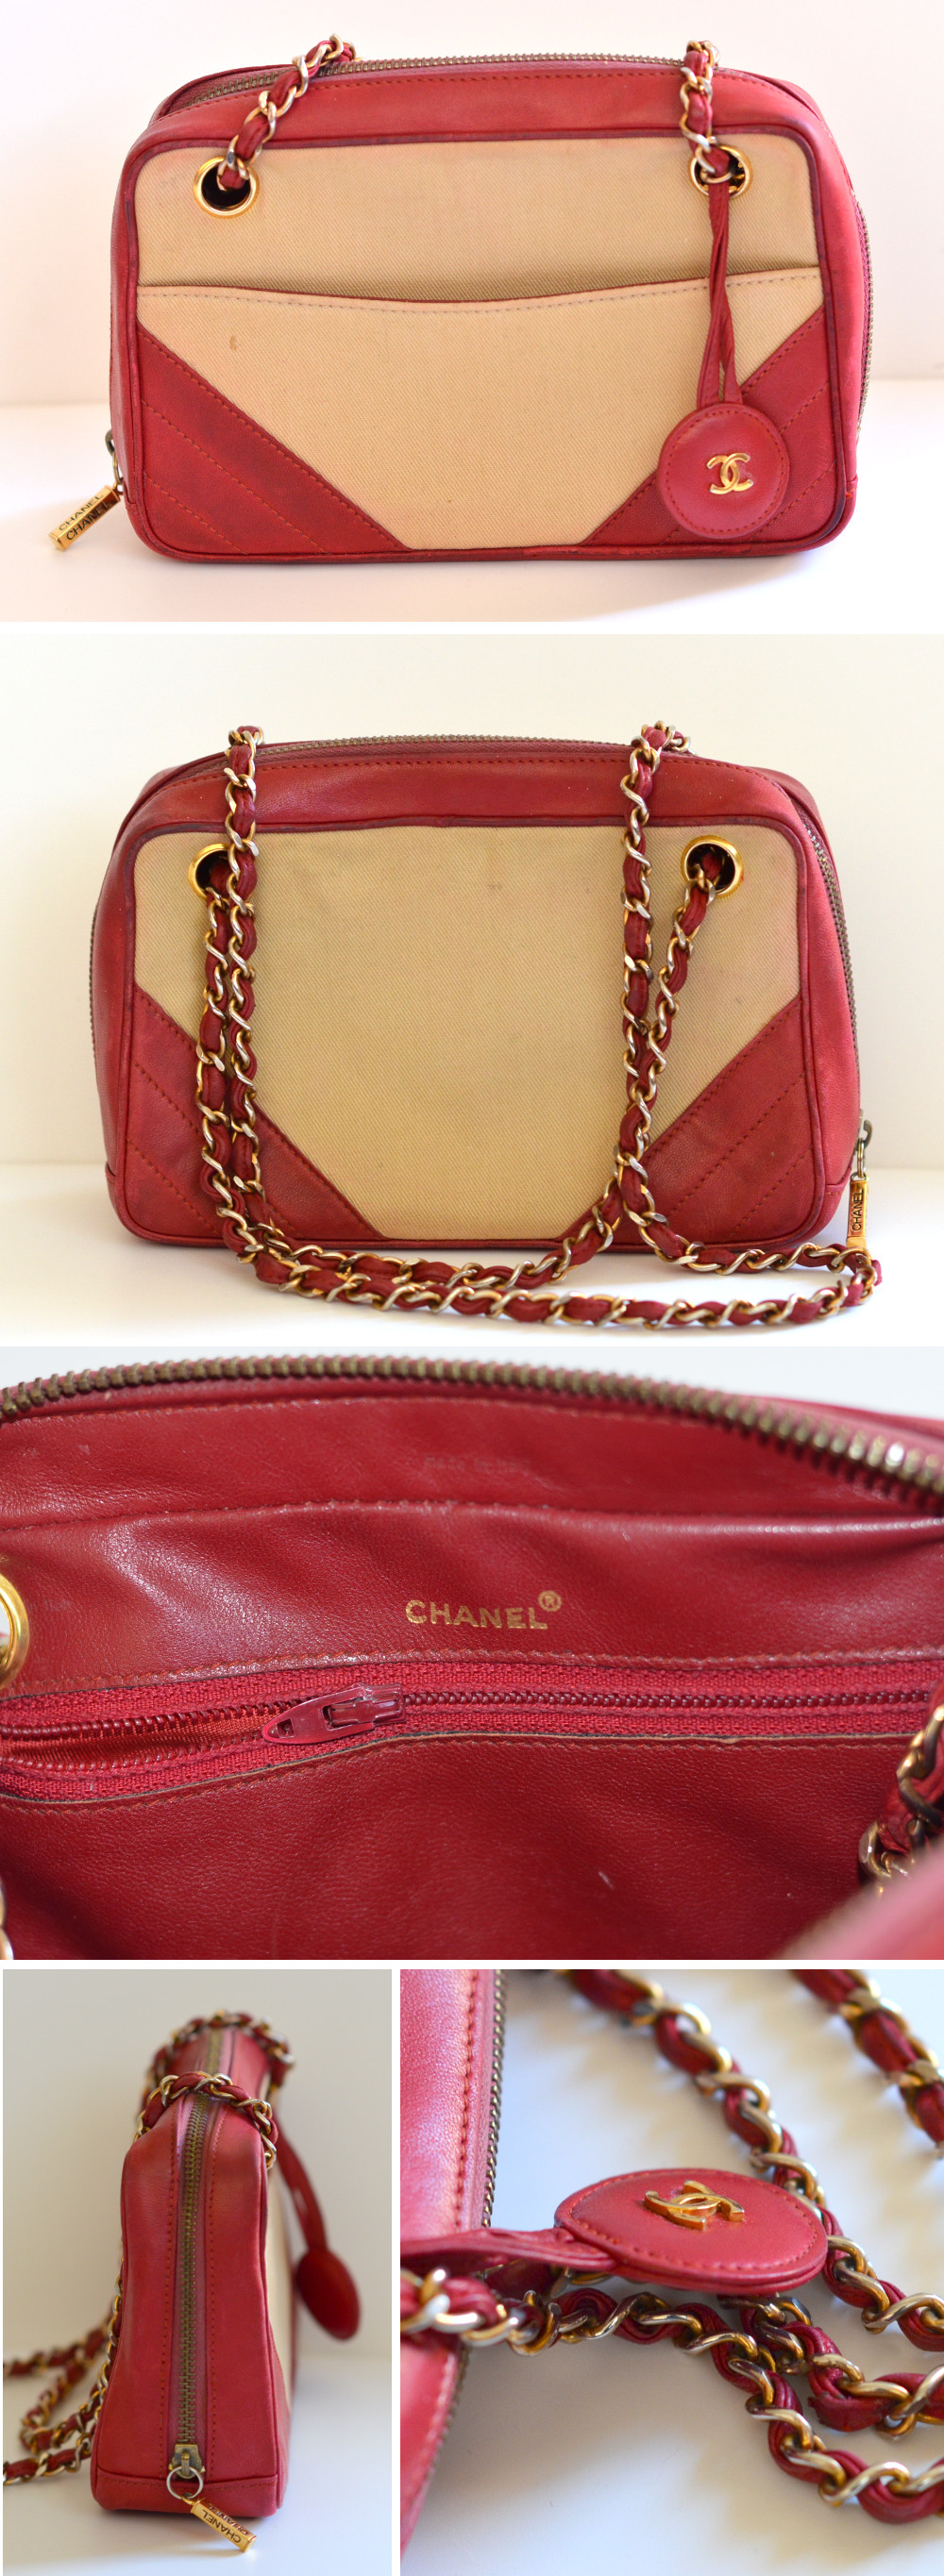 fake vintage Chanel bag features zipper pull stamp